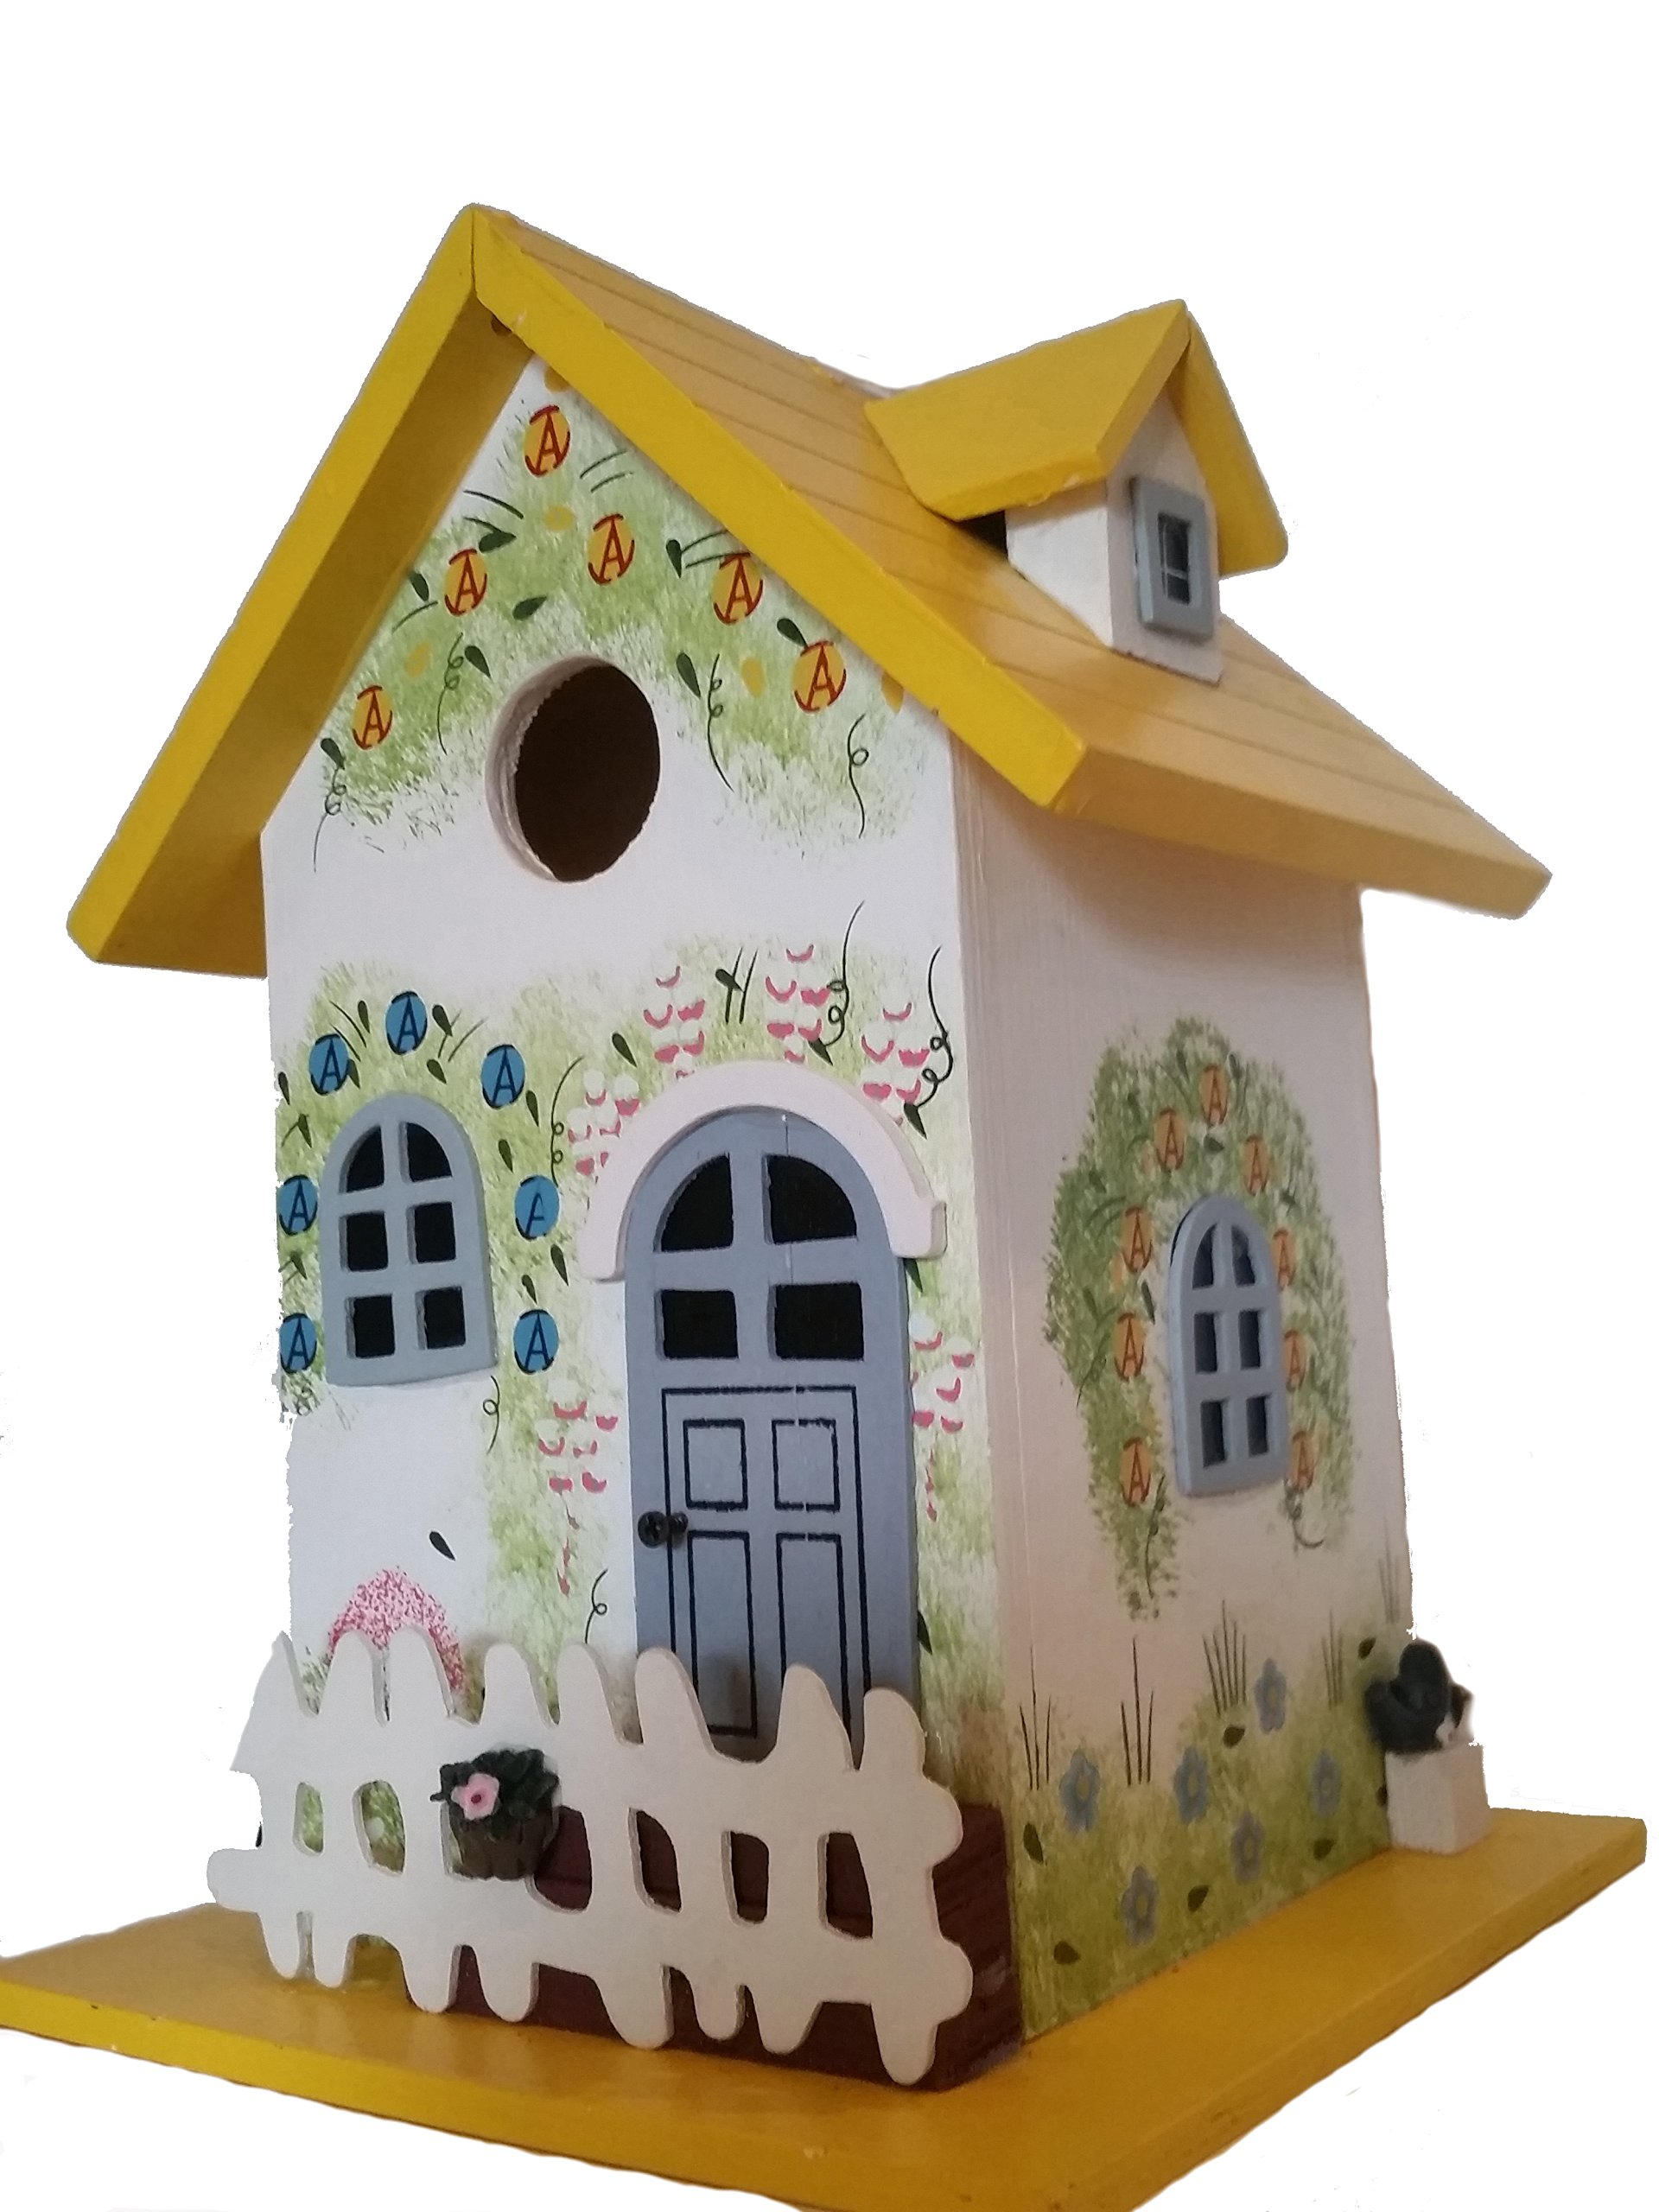 The Birdhouse Hut Garden Cottage Birdhouse is decorated to compliment any patio garden this Wood Birdhouse is hand painted with a Colorful Floral Print and a White Pickett Fence